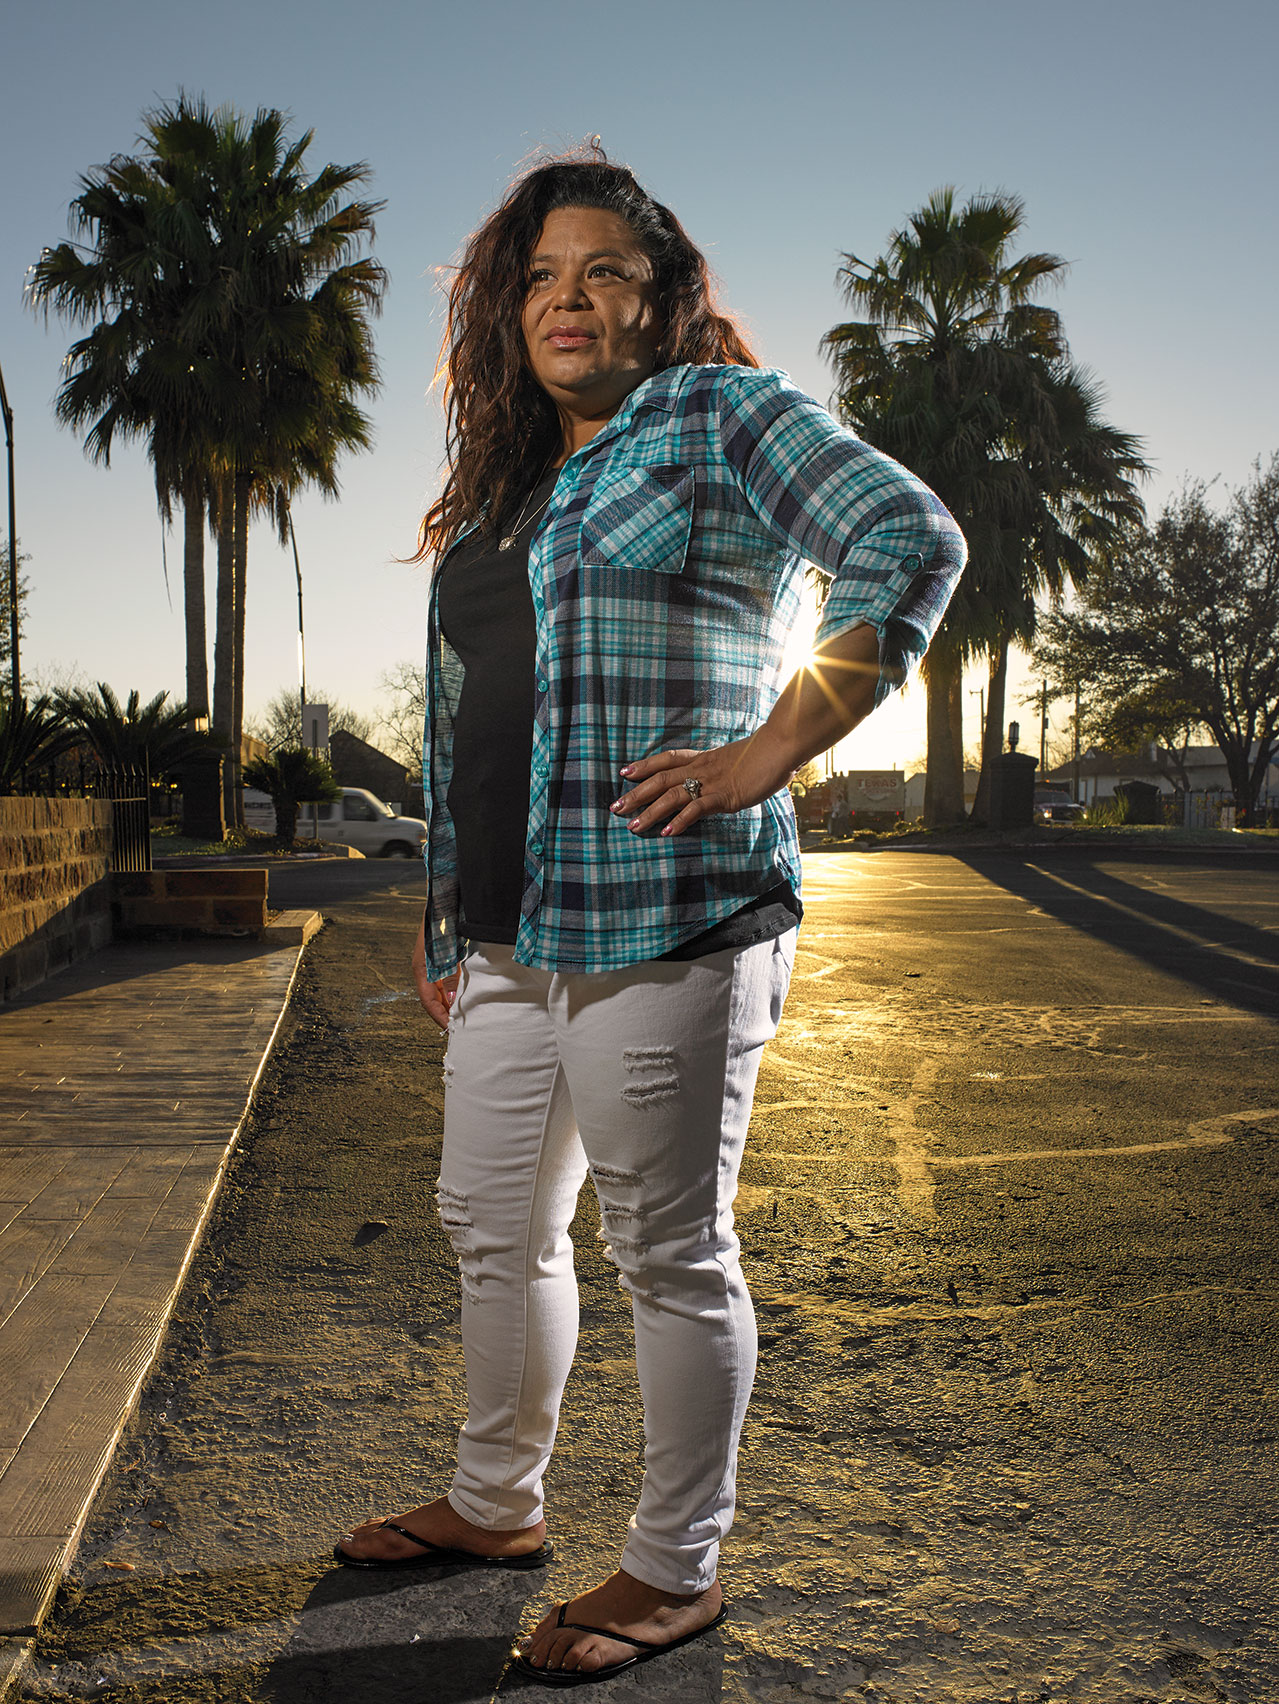 These Photos Of Diverse American Voters Will Surprise You